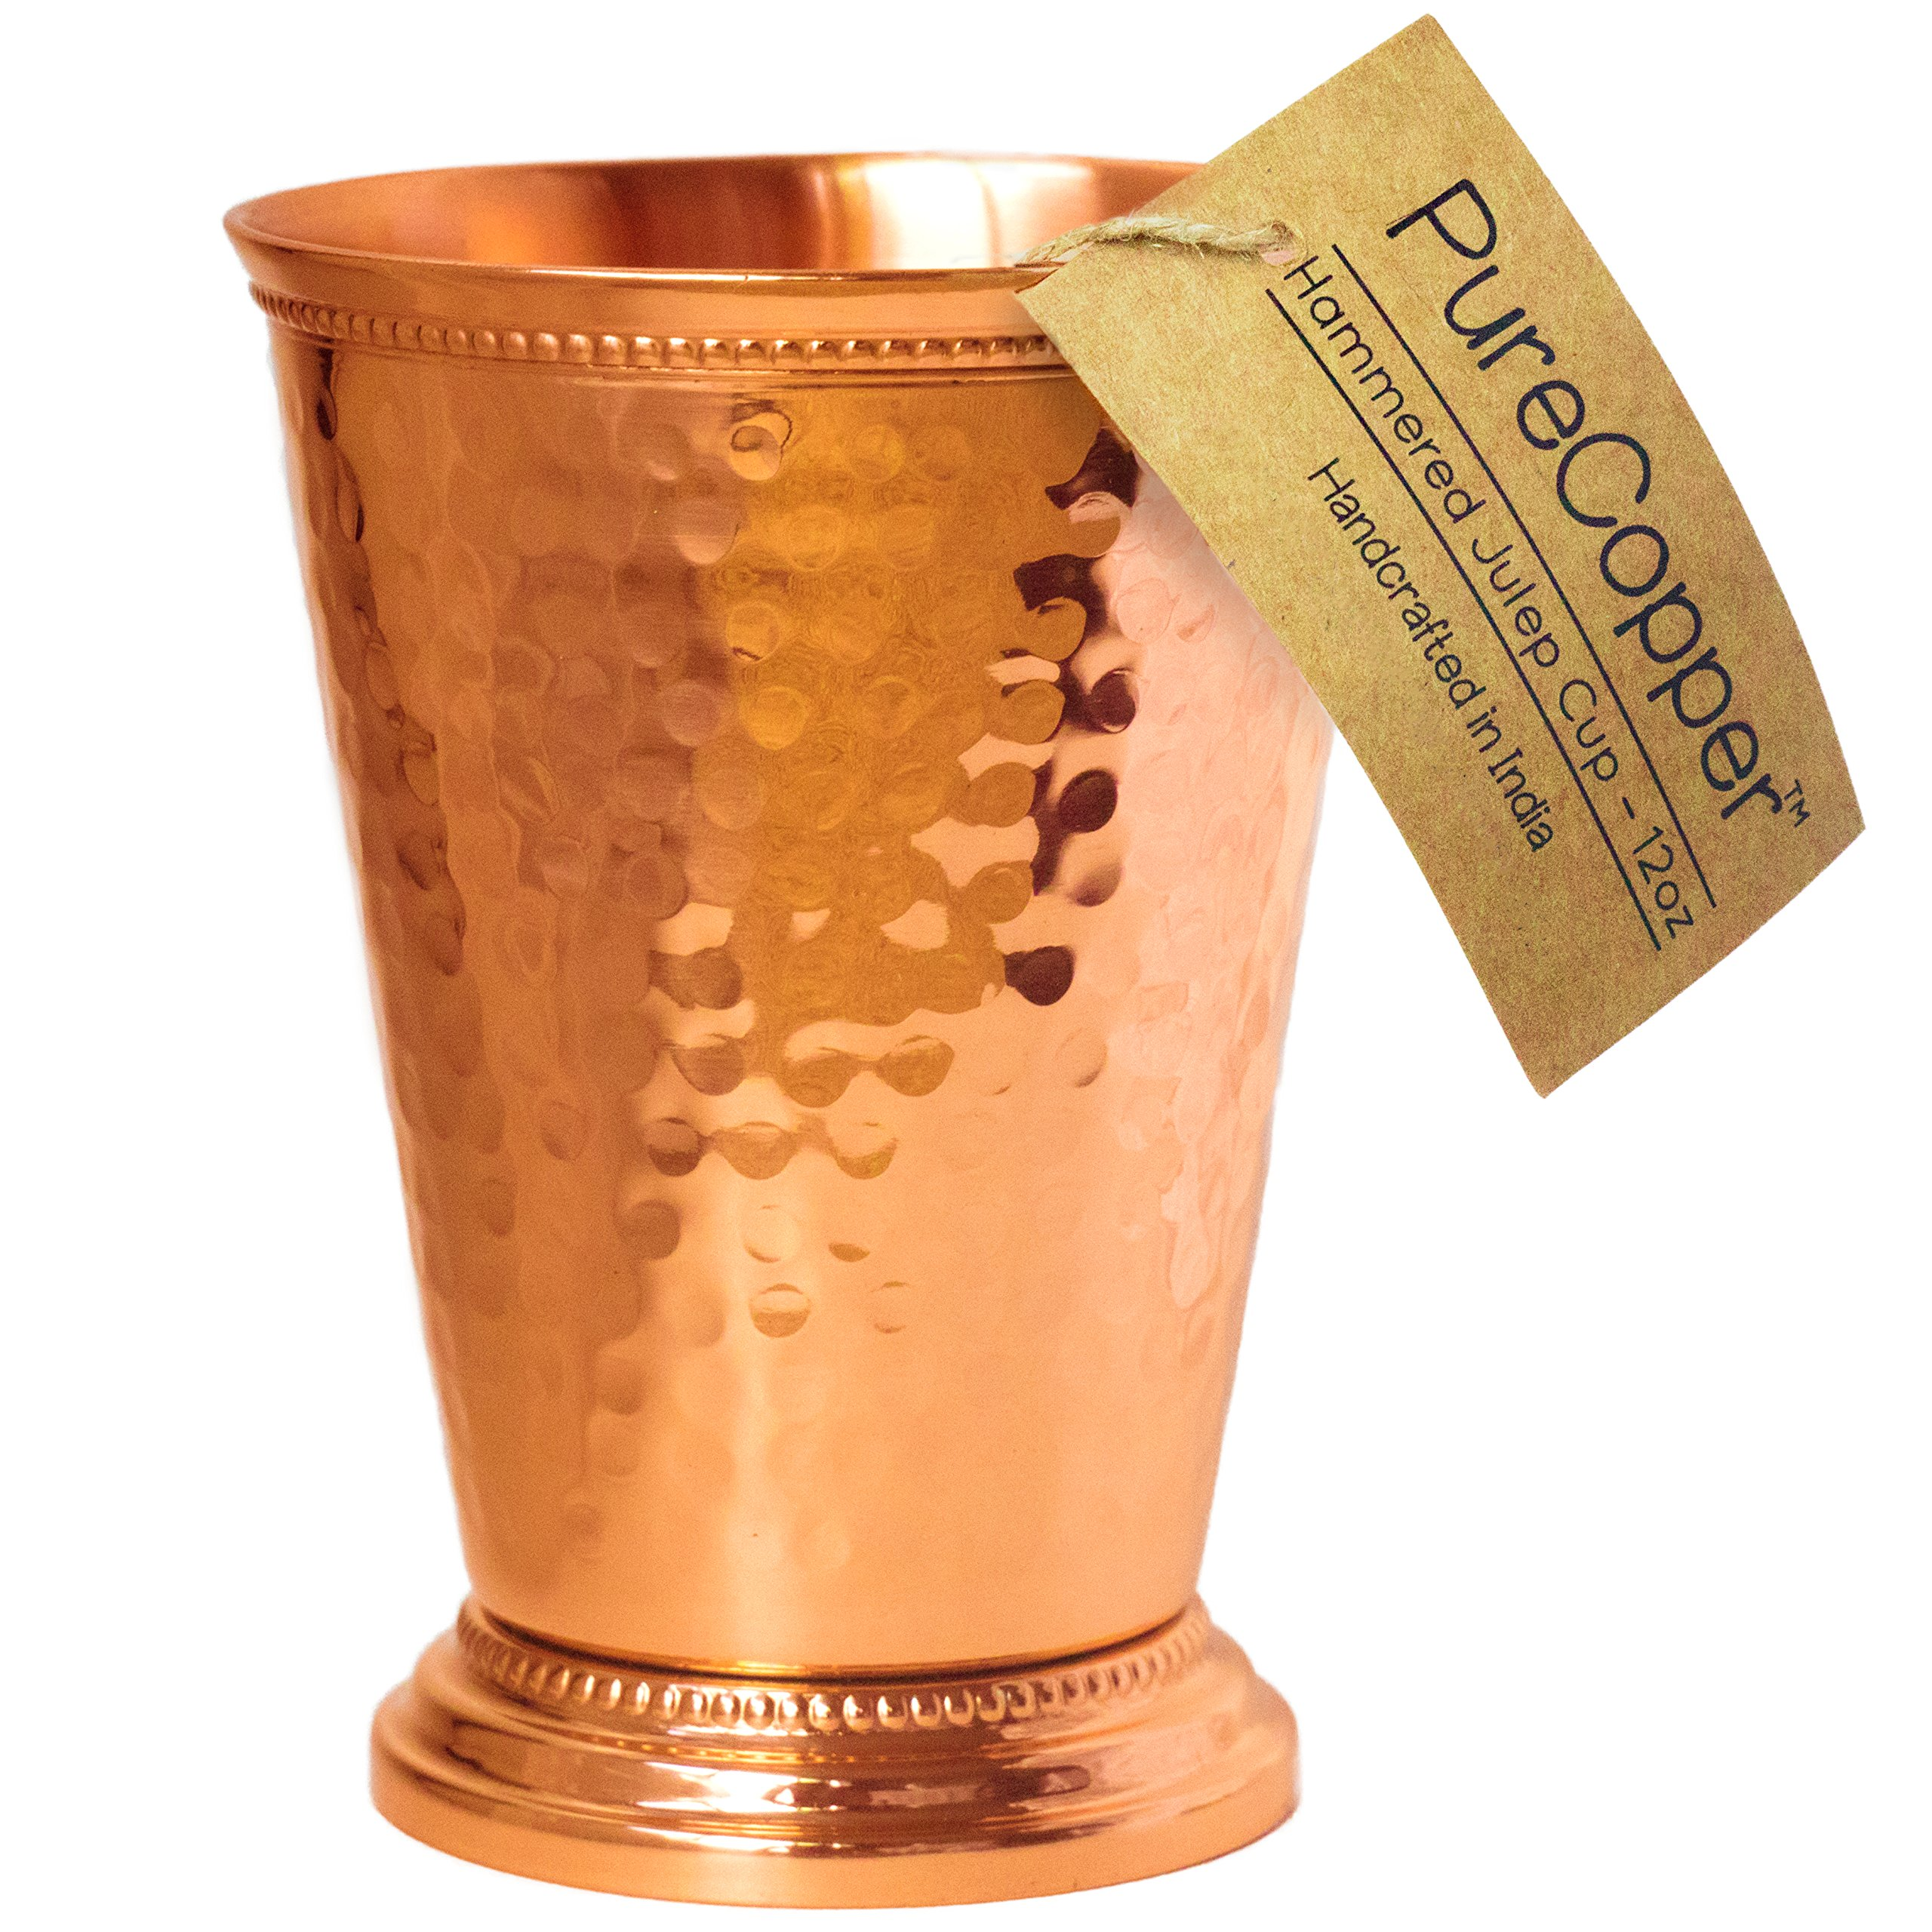 Mint Julep Cup - 100% Copper, Hammered by Hand - 4.5'' Height 12 Ounce (Hammered Copper, 12oz)